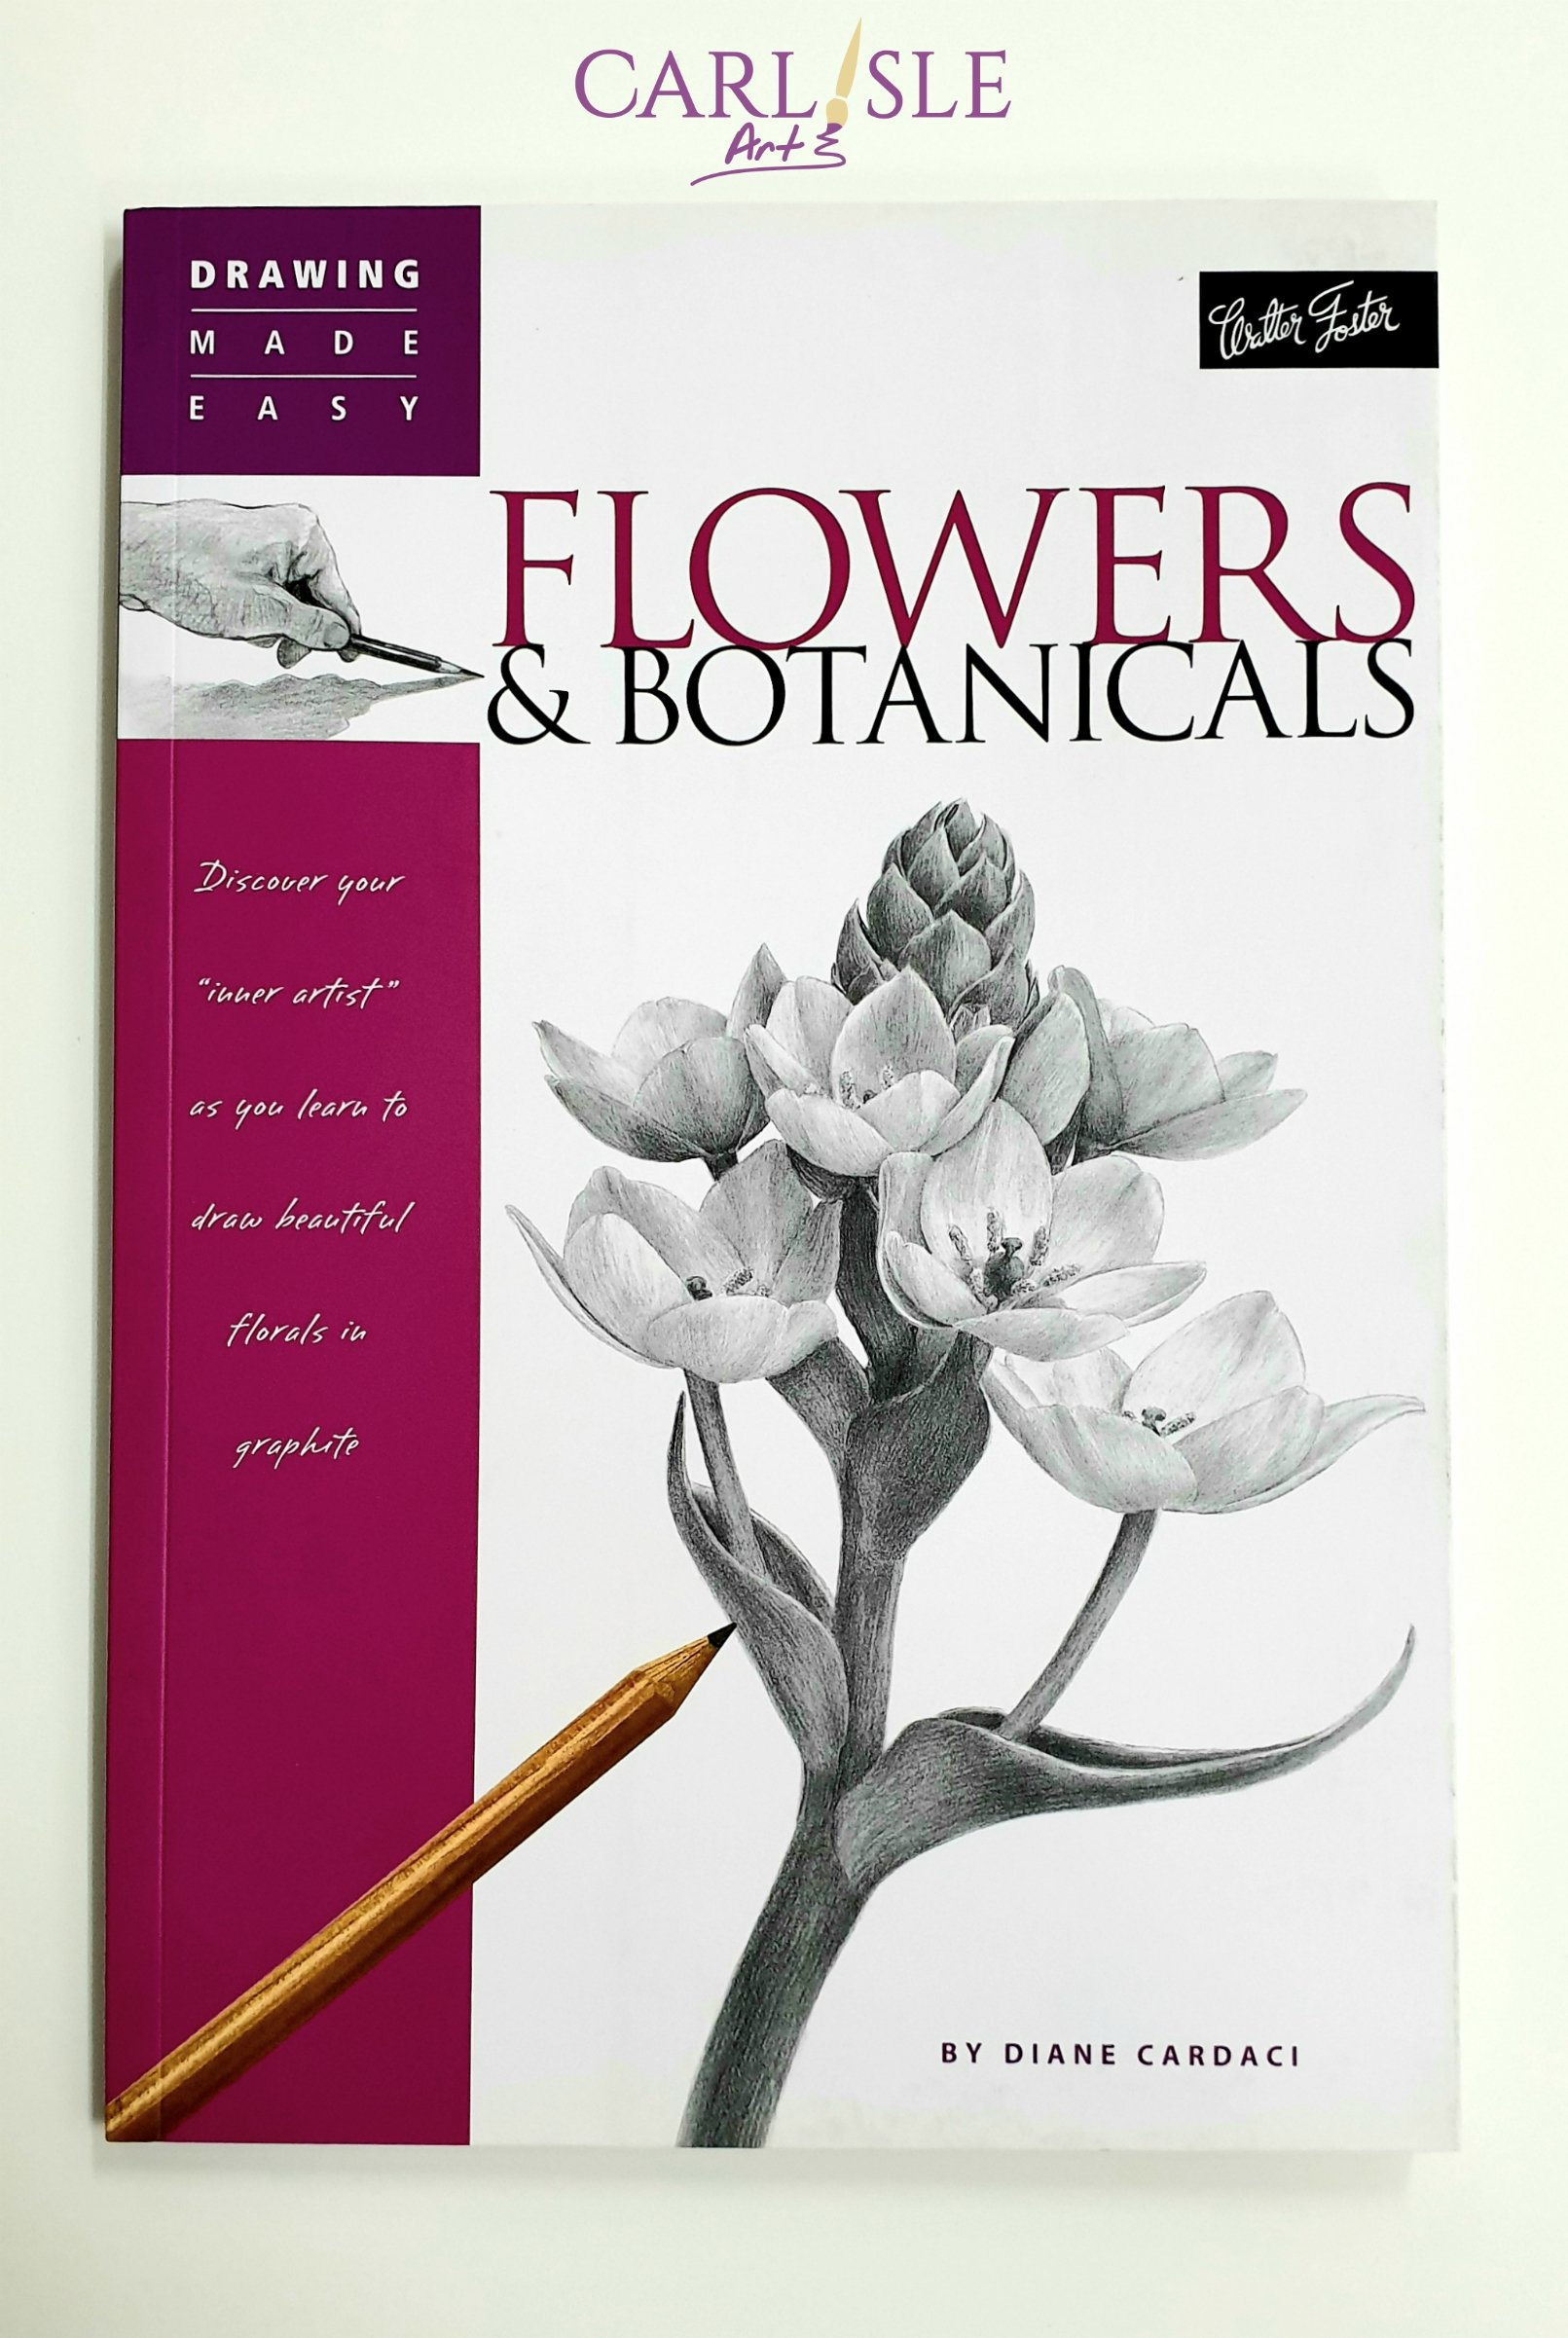 Details about Drawing Made Easy Flowers \u0026 Botanicals